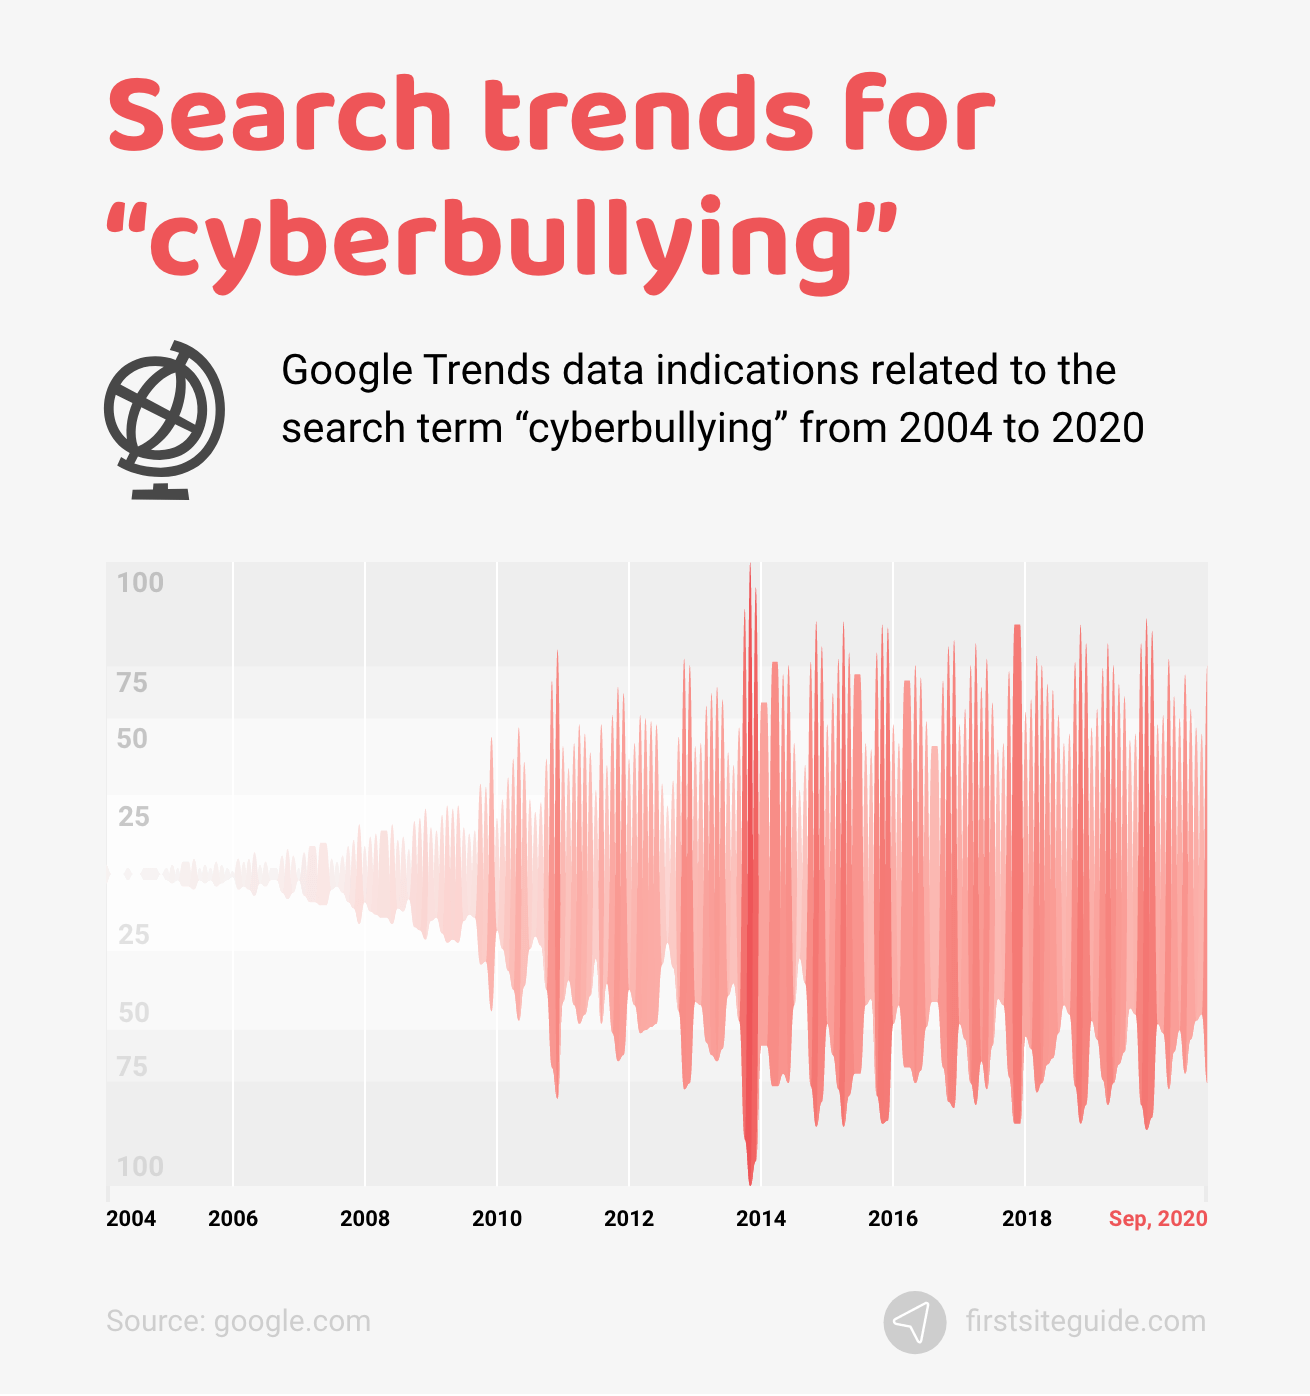 Search trends for cyberbullying